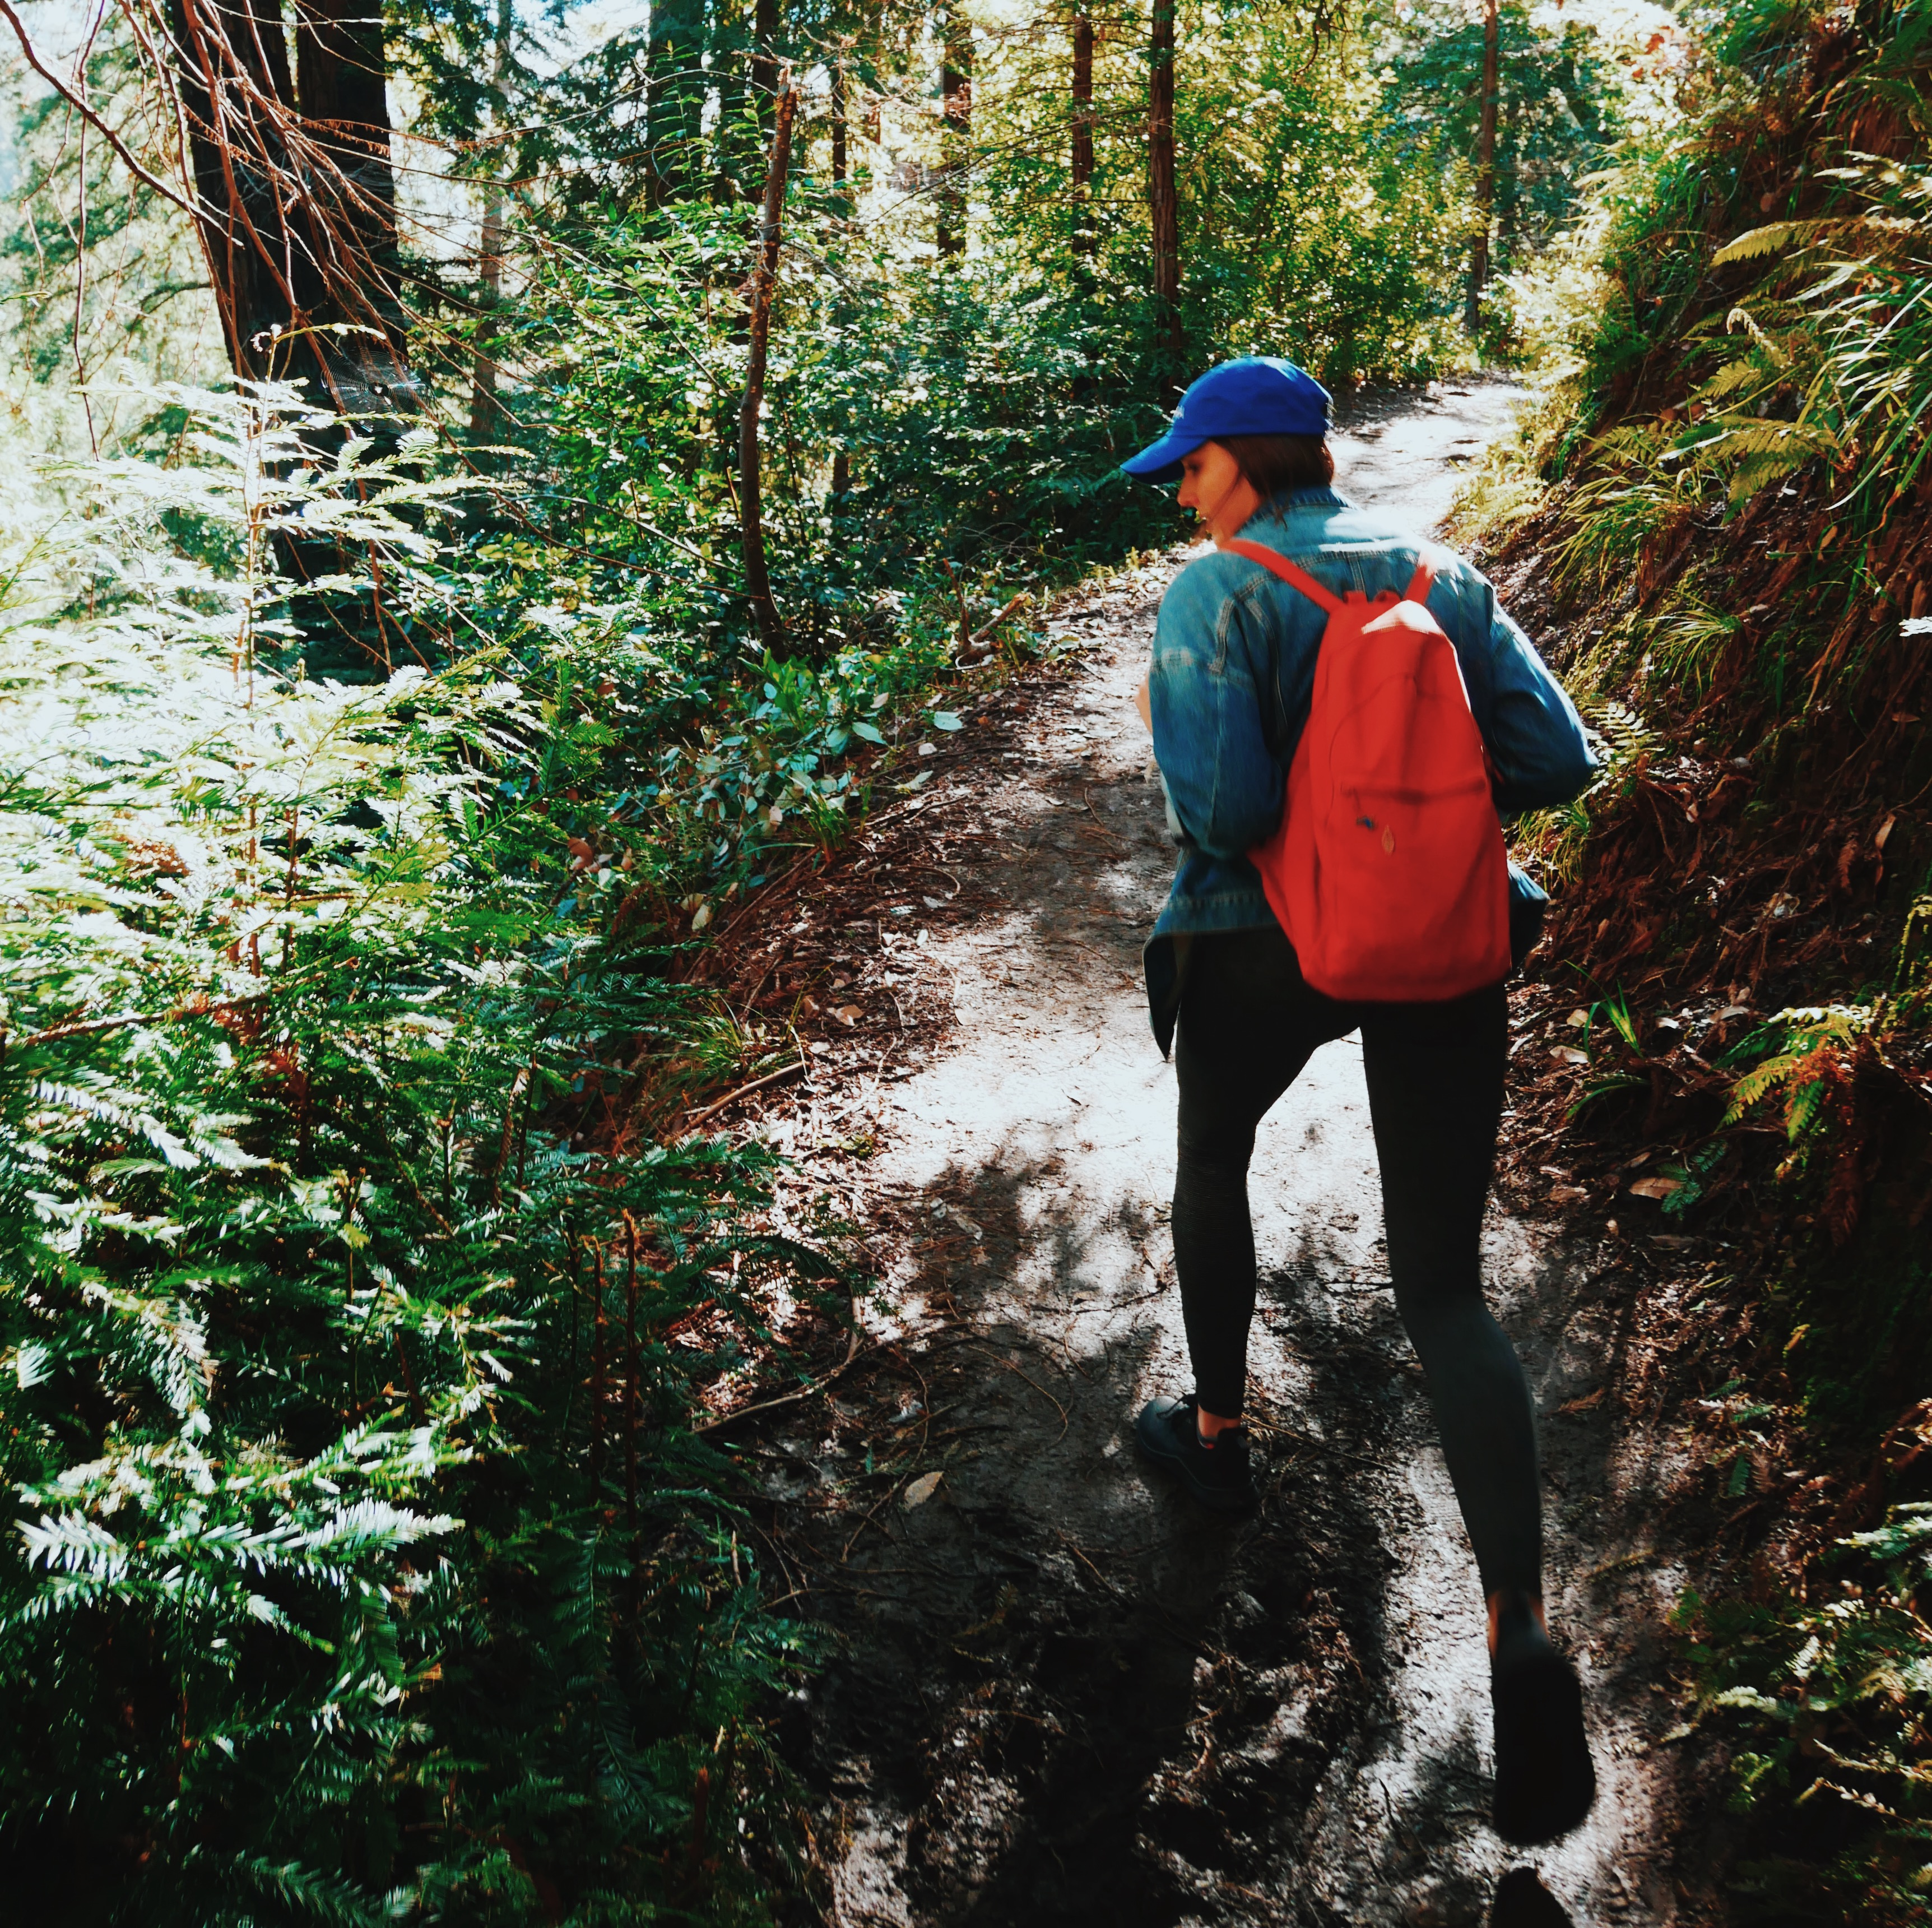 Cofounder hiking in the woods wearing jacket, red backpack, and blue hat